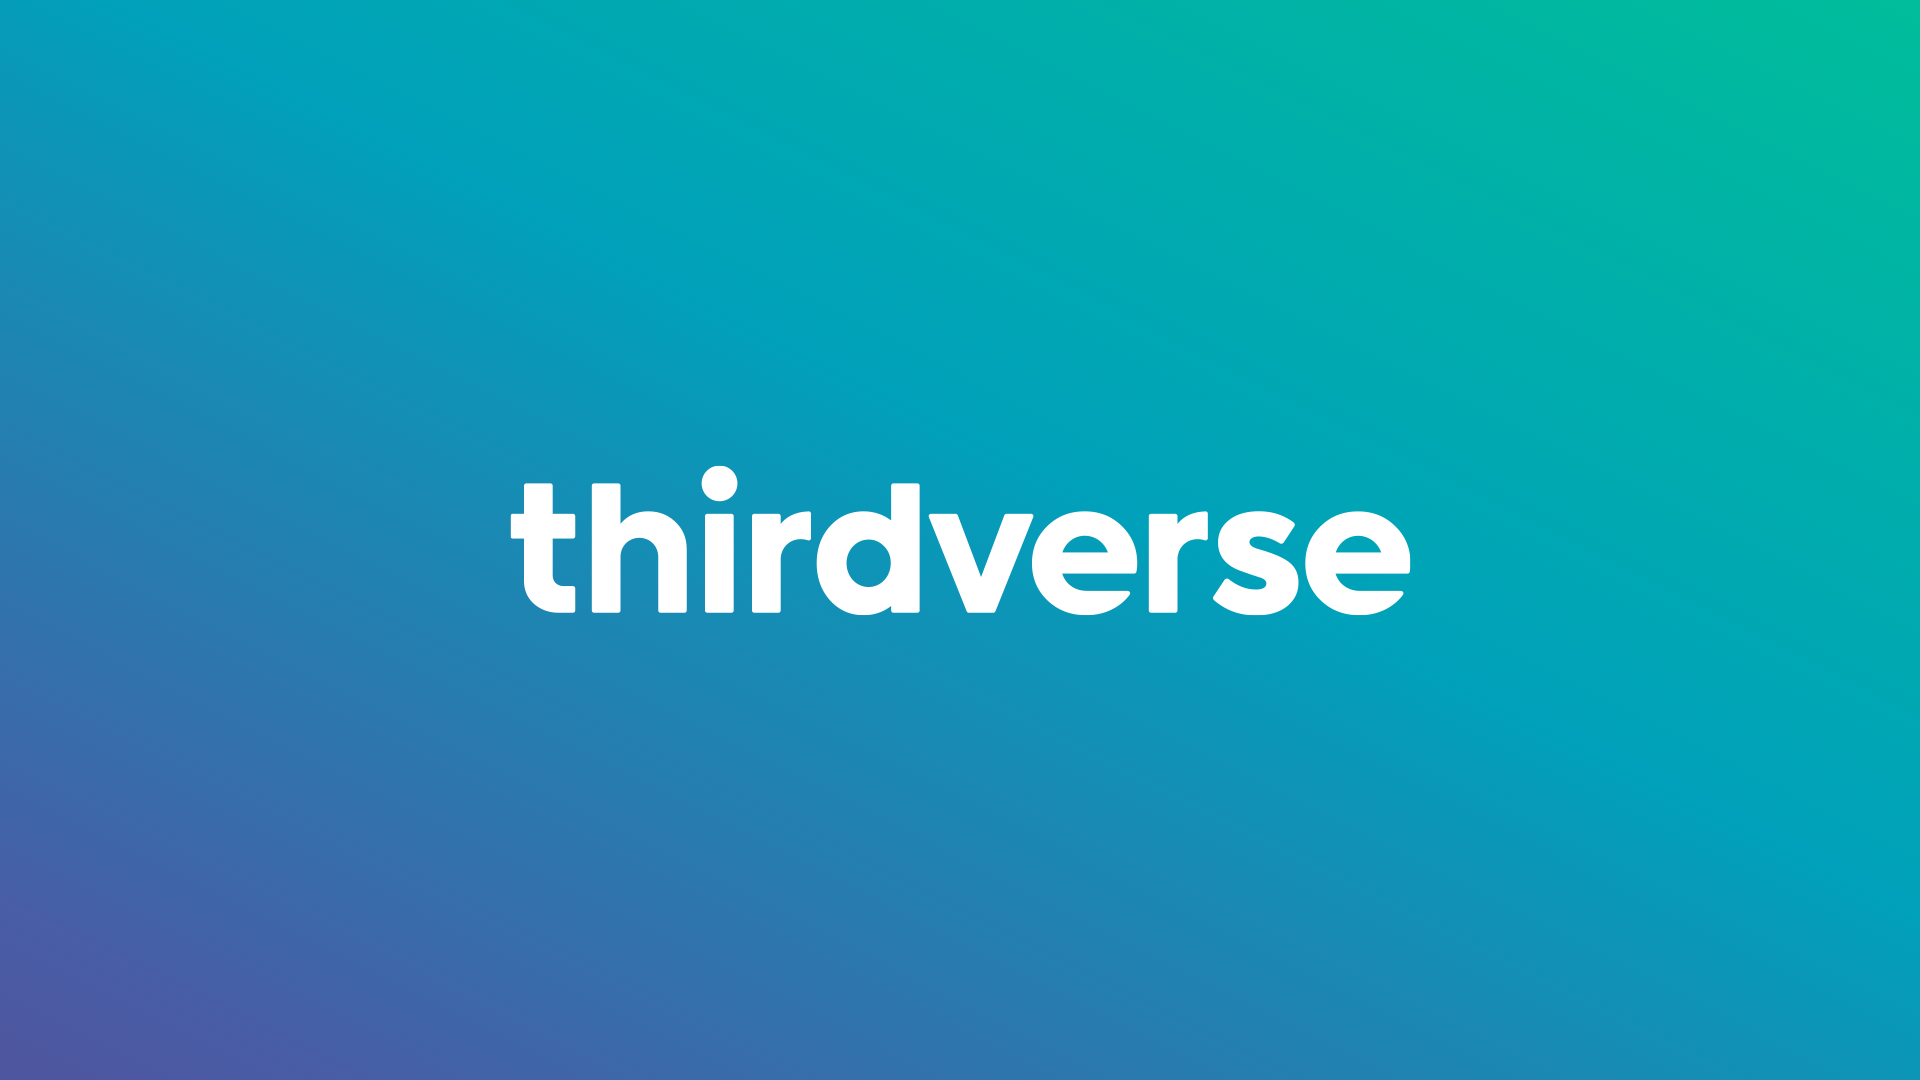 Thirdverse Names gumi Founder Hironao Kunimitsu as Chief Executive Officer, Secures $20M in Funding to Accelerate Growth